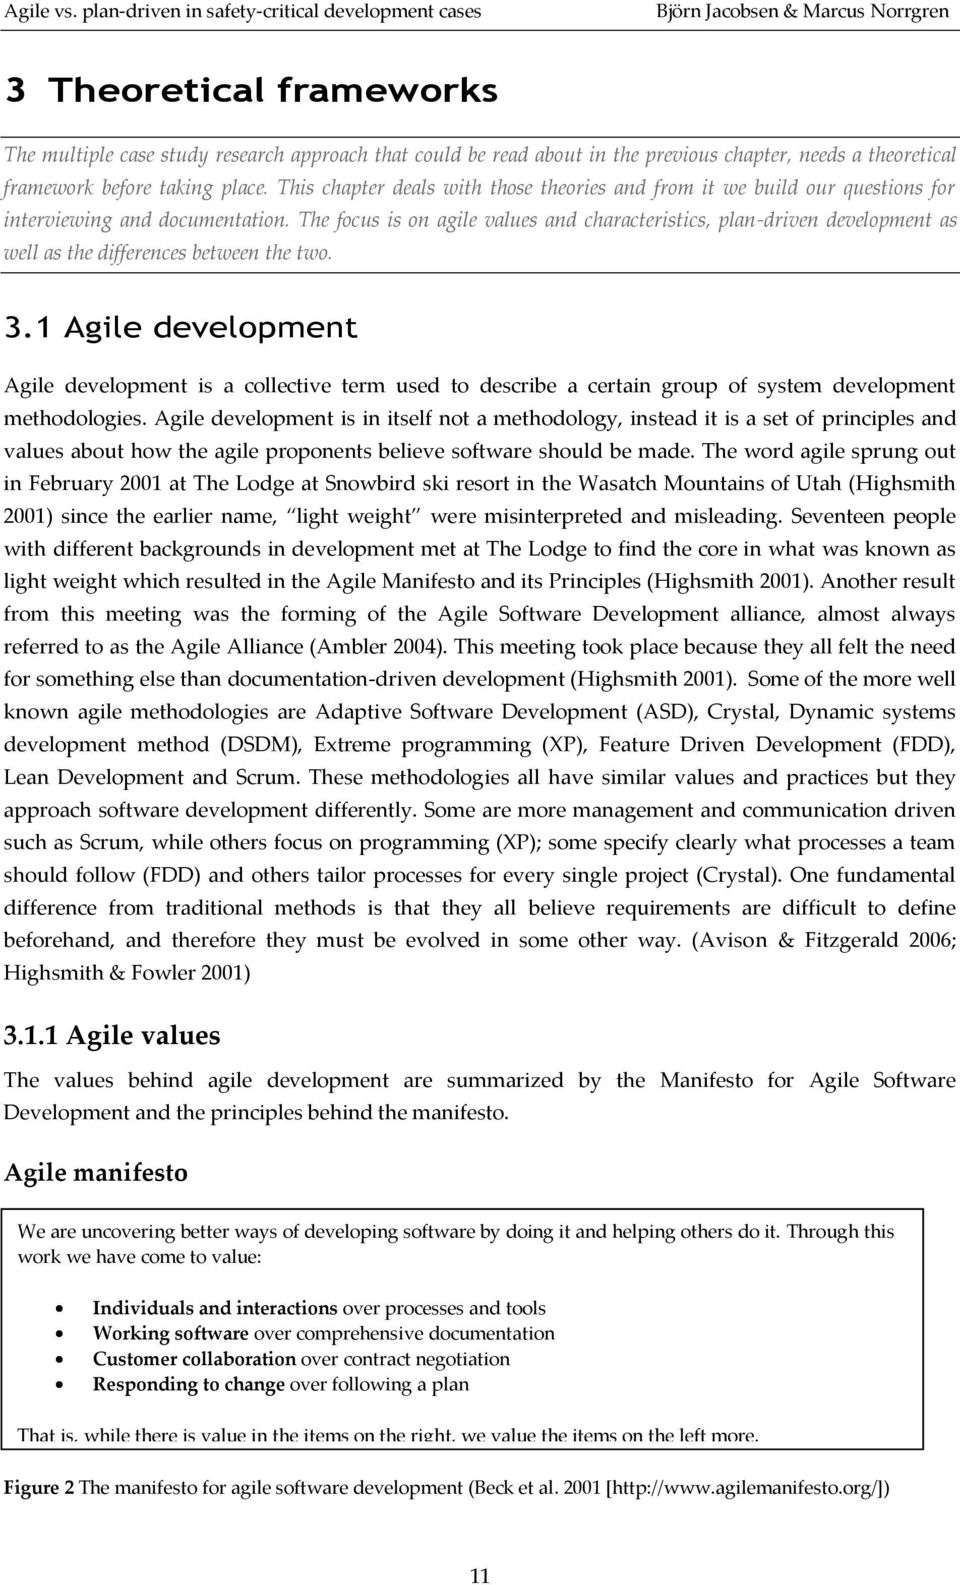 The focus is on agile values and characteristics, plan-driven development as well as the differences between the two. 3.